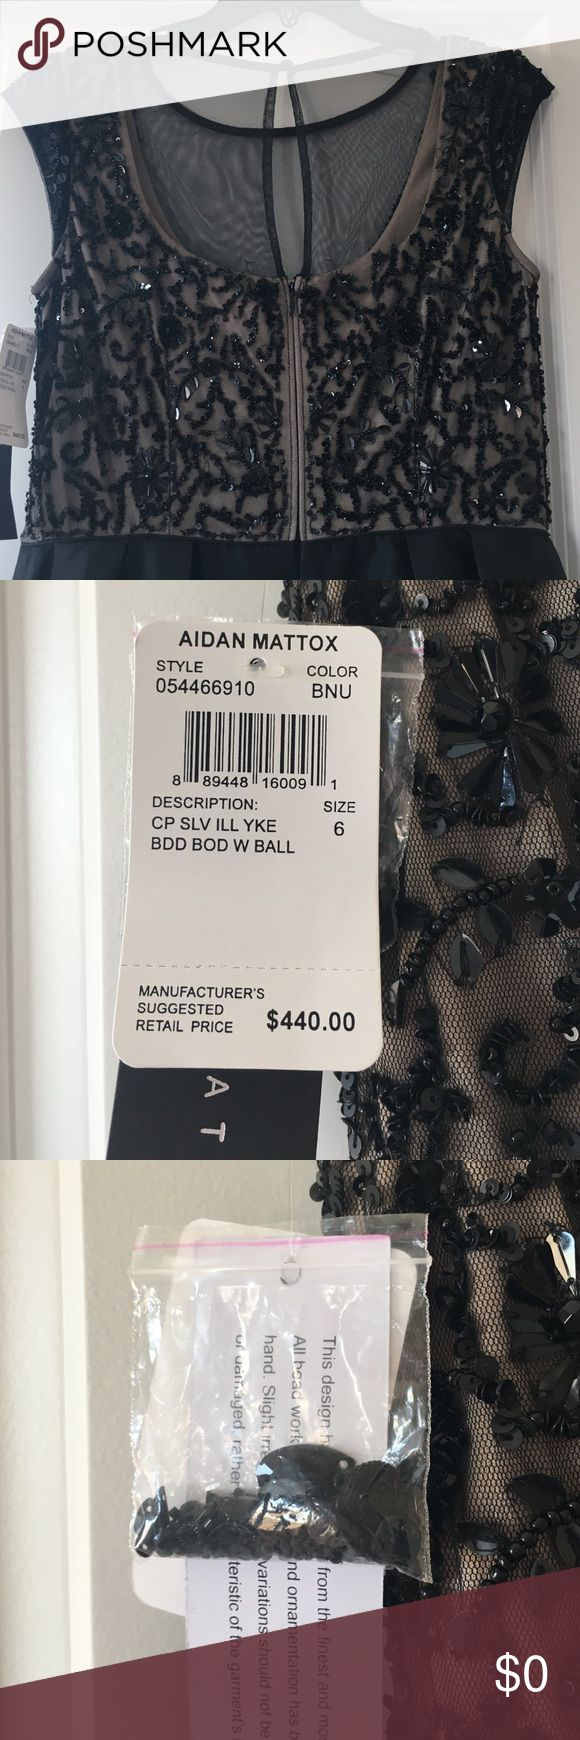 Additional photos of Aidan Mattox gown See other listing for sale price! Aidan Mattox Dresses